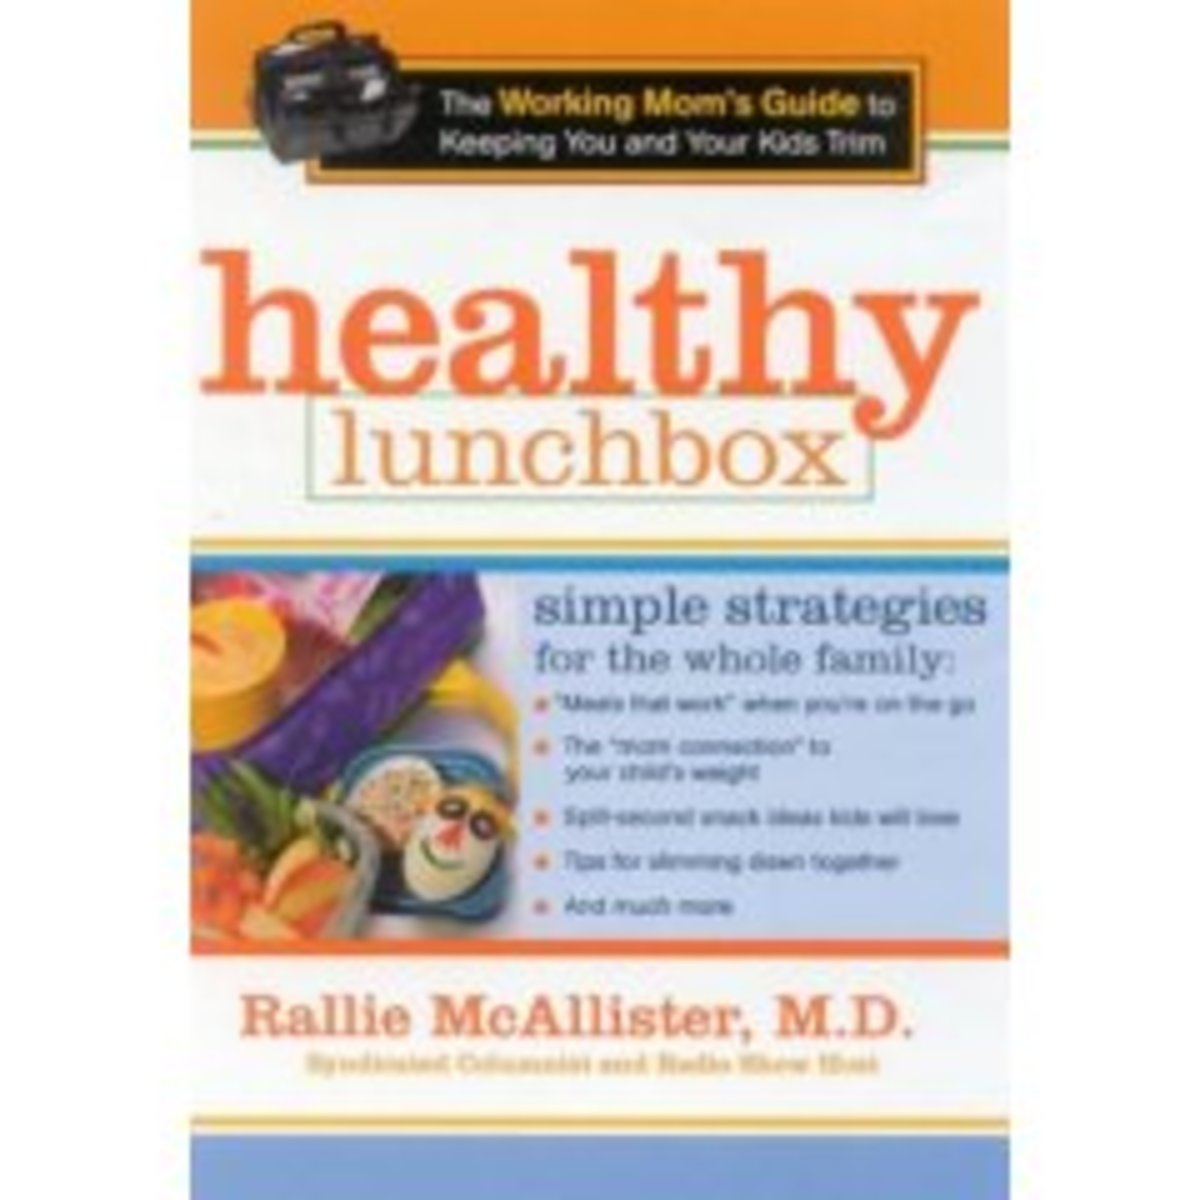 healthy-lunchbox1